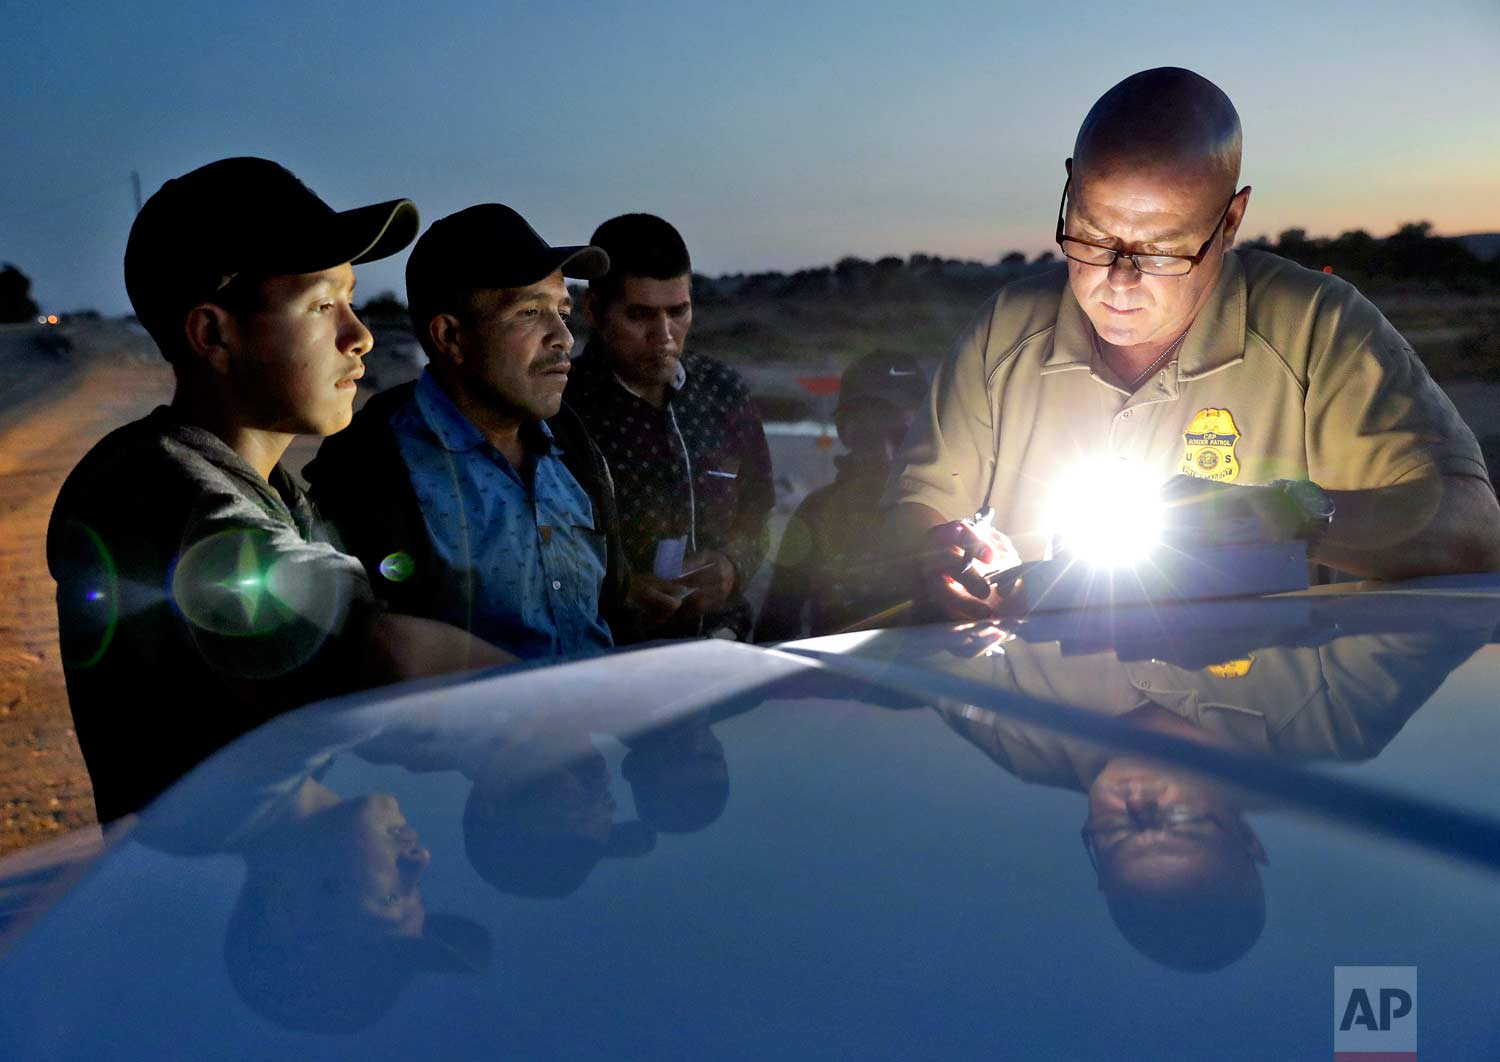 A U.S. Customs and Border Patrol agent gathers information on four Guatemalan nationals, including two men and a pair of 12 and 13-year-old boys, Wednesday, July 18, 2018, in Yuma, Ariz. (AP Photo/Matt York)